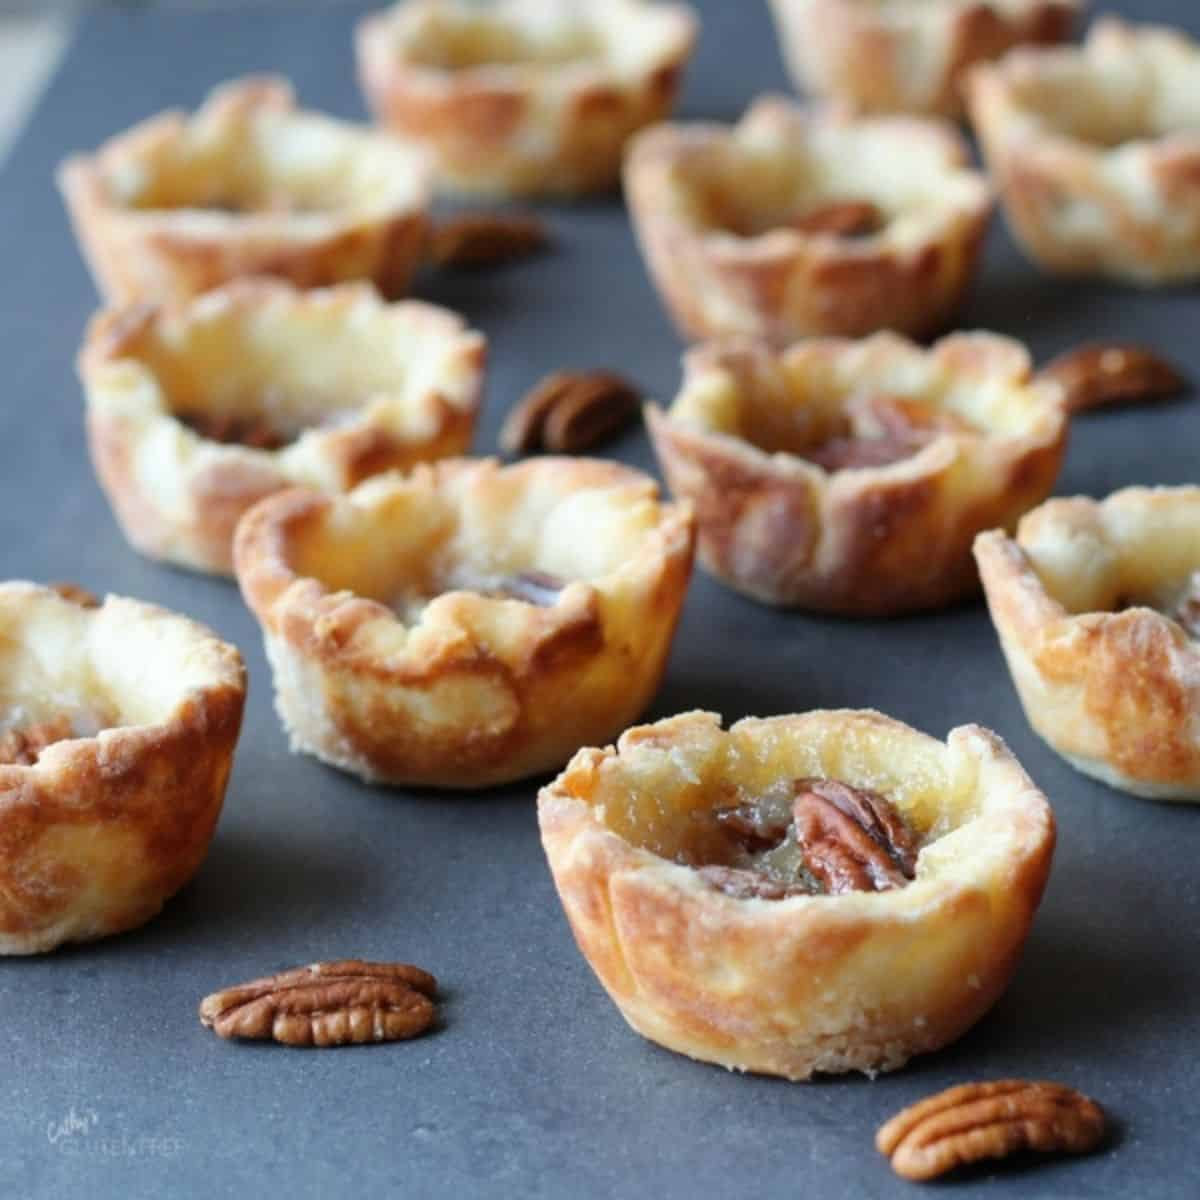 several butter tarts with pecans spread out over grey surface